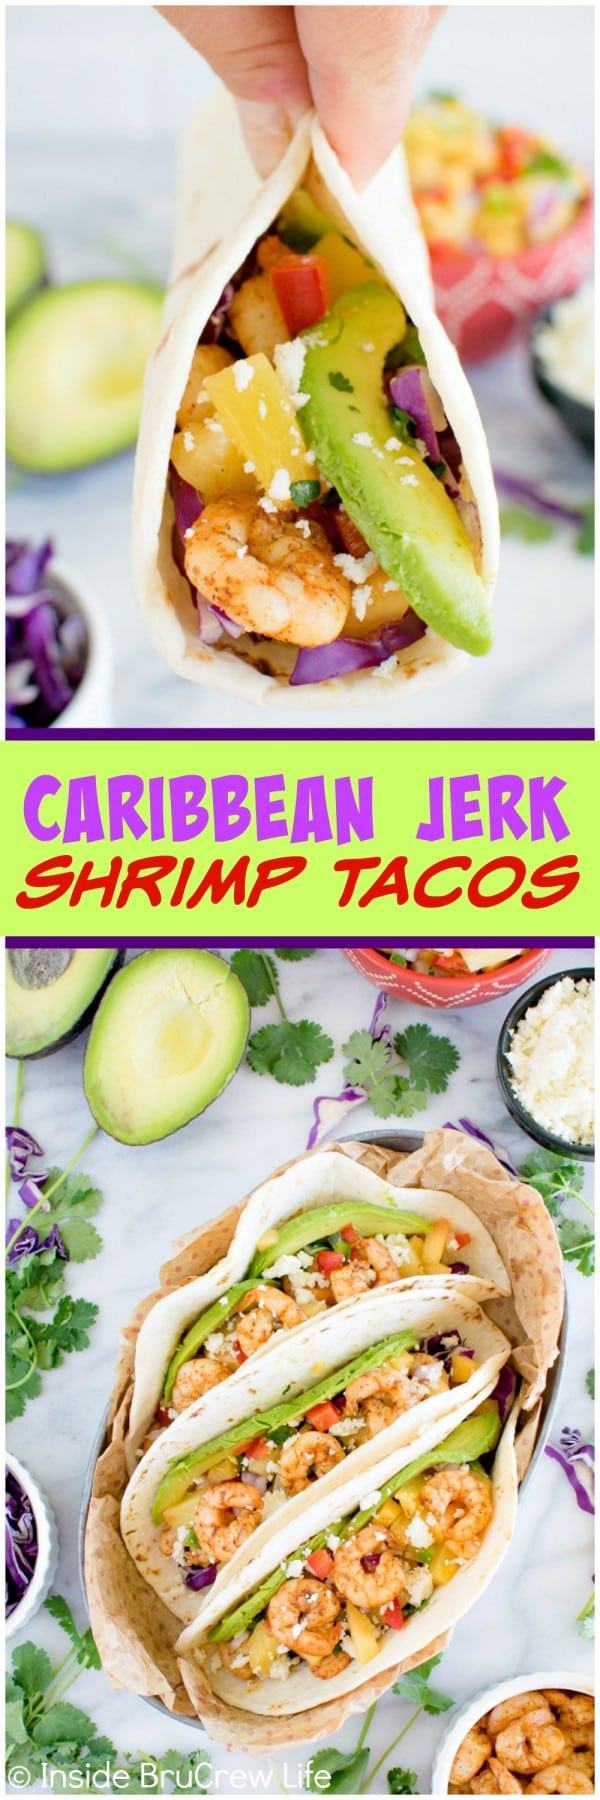 Caribbean Jerk Shrimp Tacos - spicy shrimp, fruit salsa, veggies, & cheese make these tacos a delicious dinner idea. Great fresh recipe!